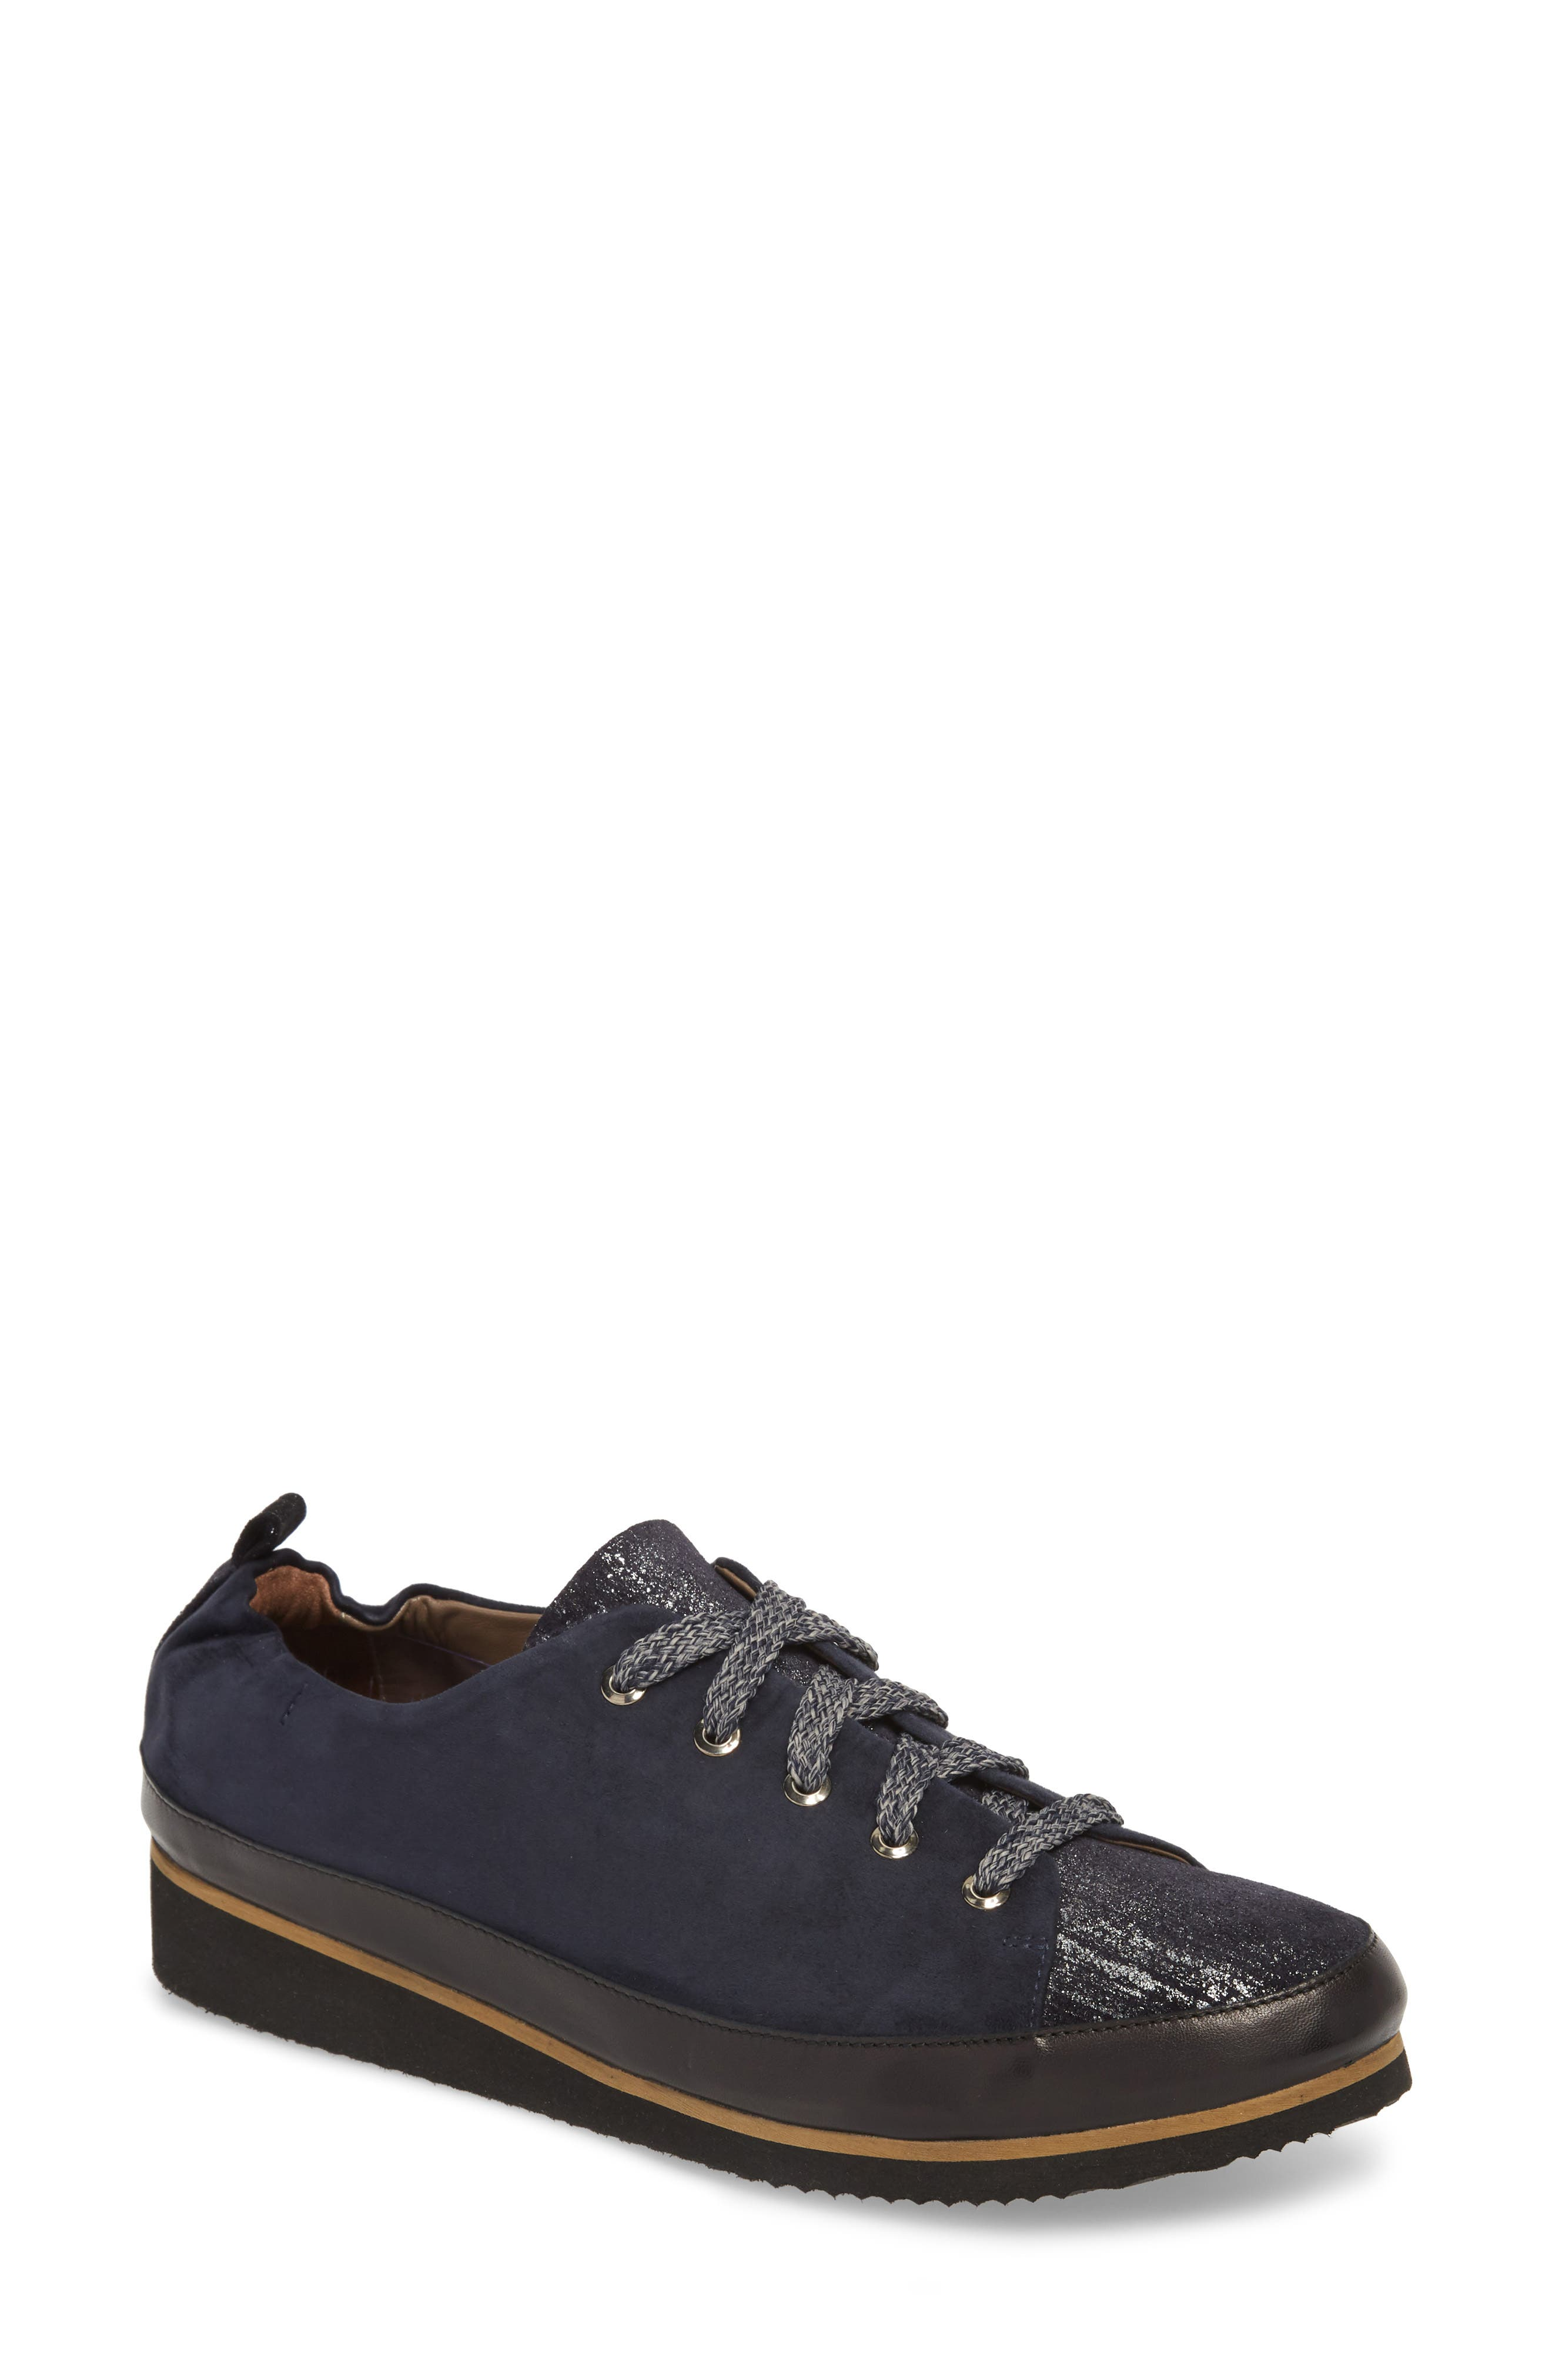 Nettie Lace-Up Wedge Sneaker,                             Main thumbnail 1, color,                             FRENCH NAVY LEATHER